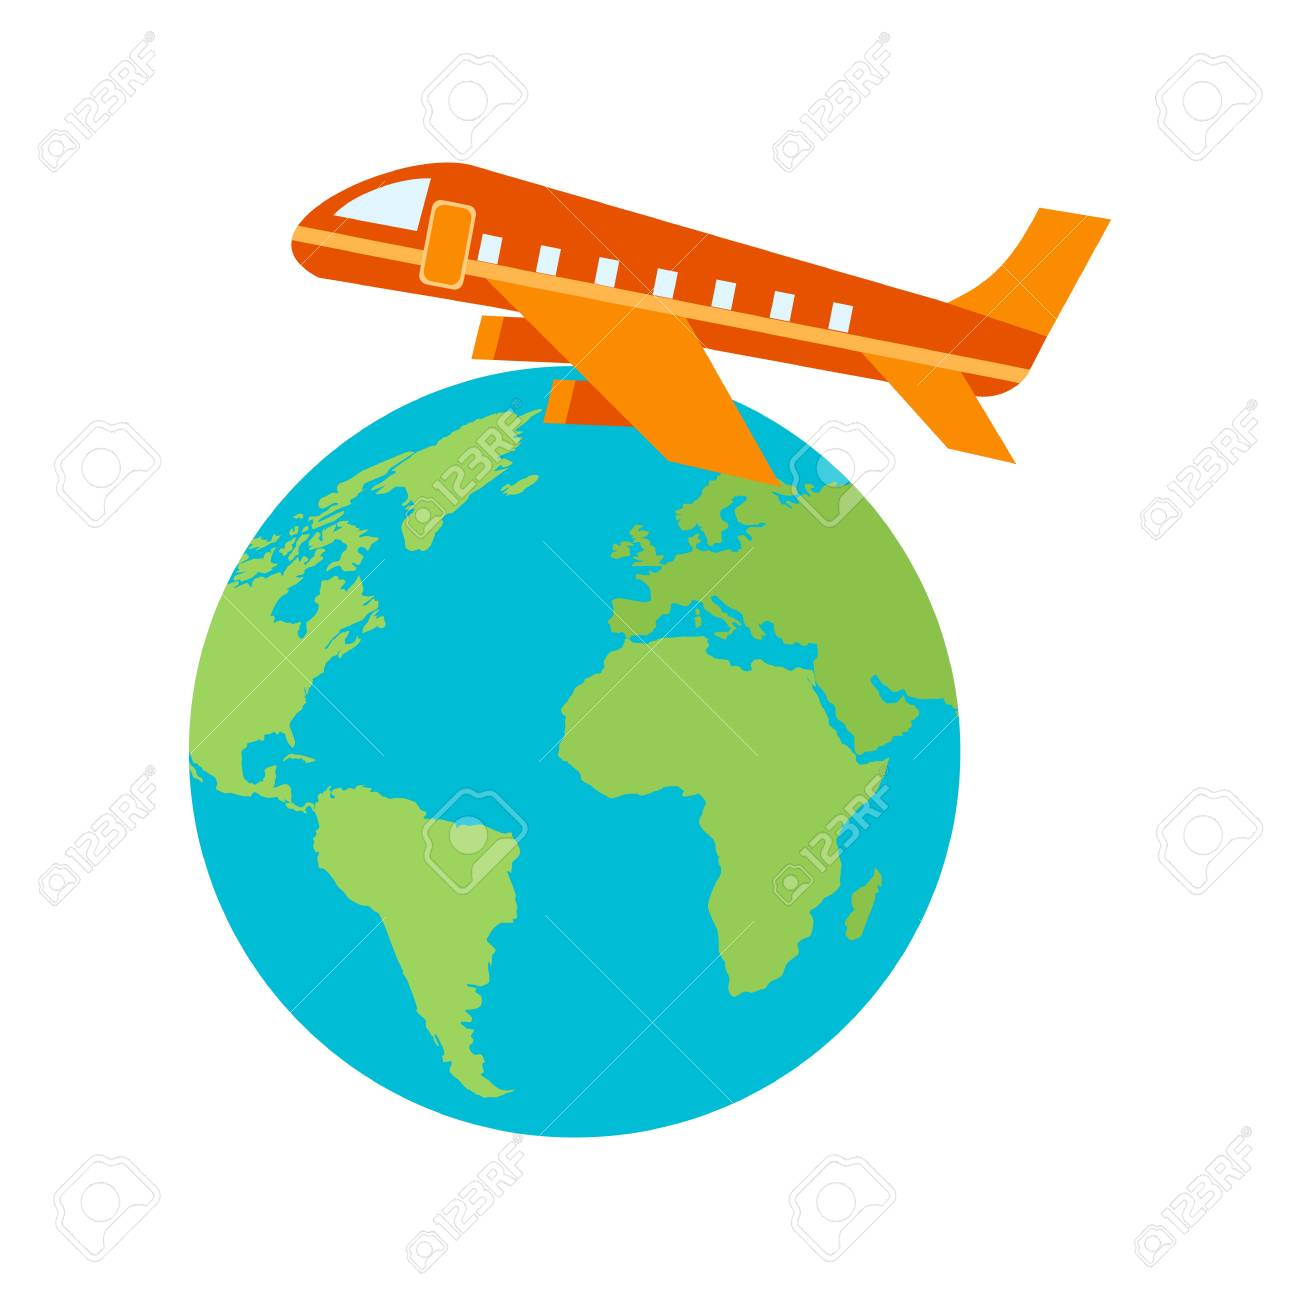 International Airport Flights Icon Vector Image Can Also Be Used For